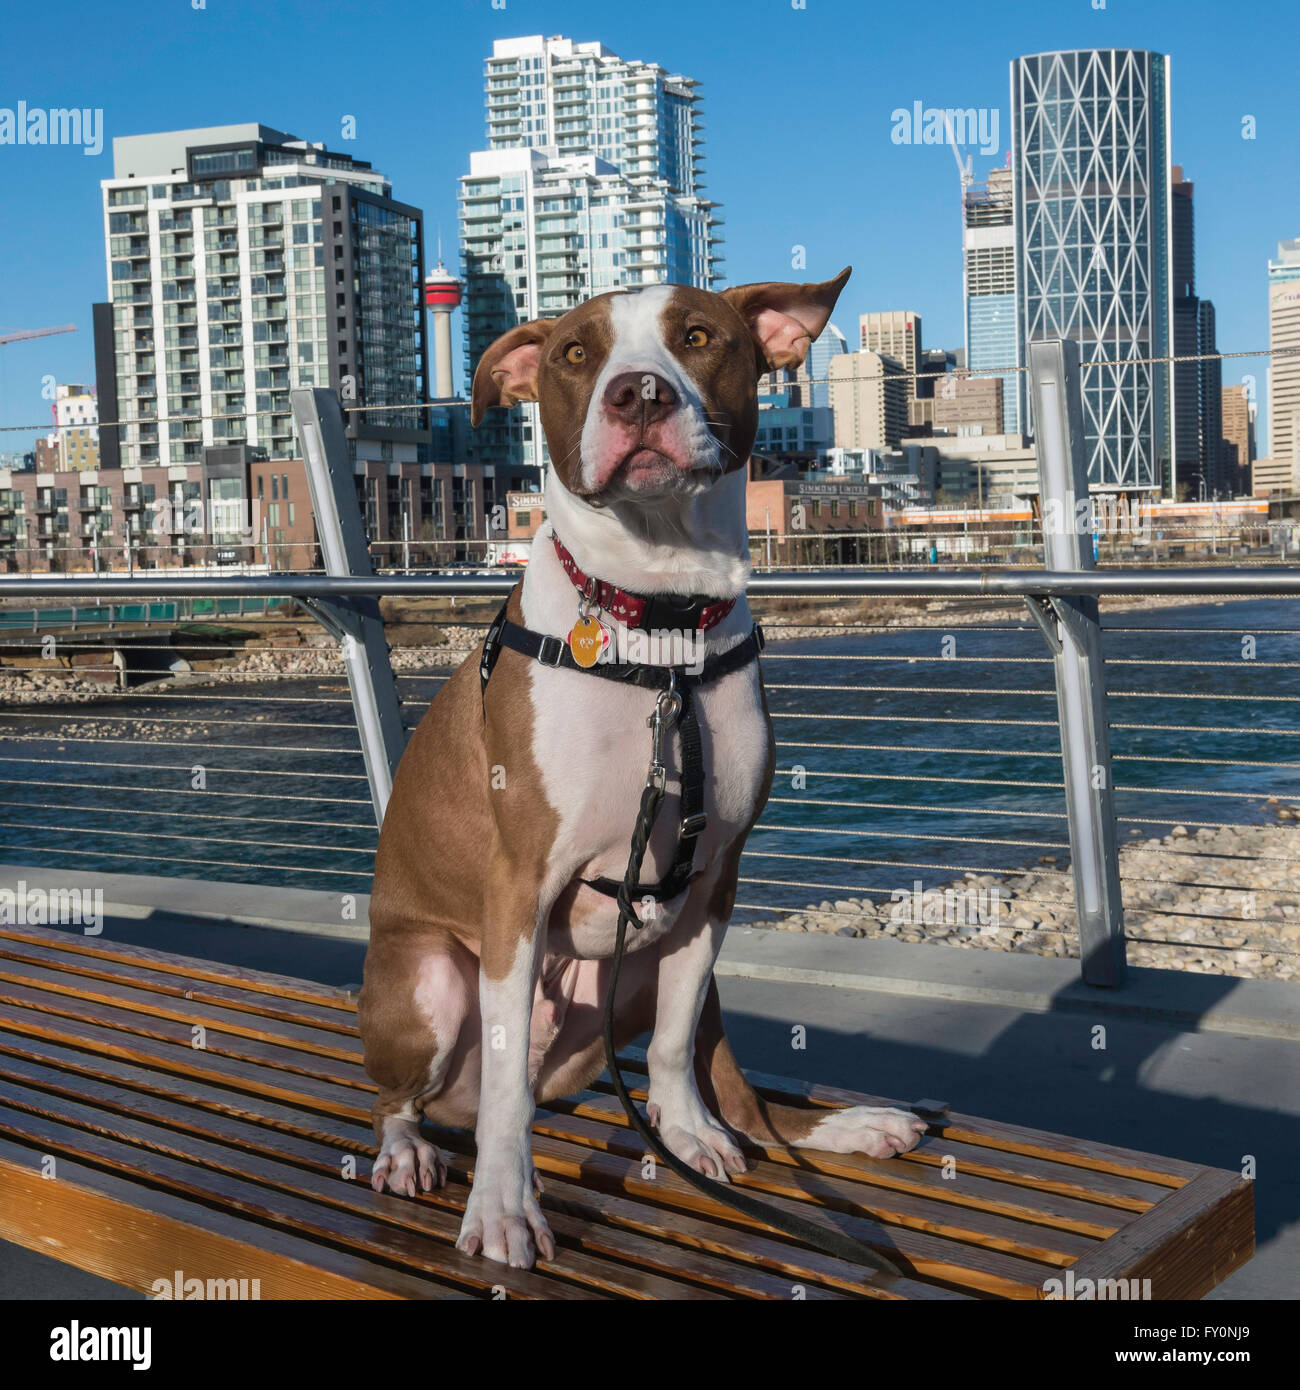 Pit bull dog, crossbreed, portrait, mixed breed, East Village, Calgary, Alberta, Canada - Stock Image